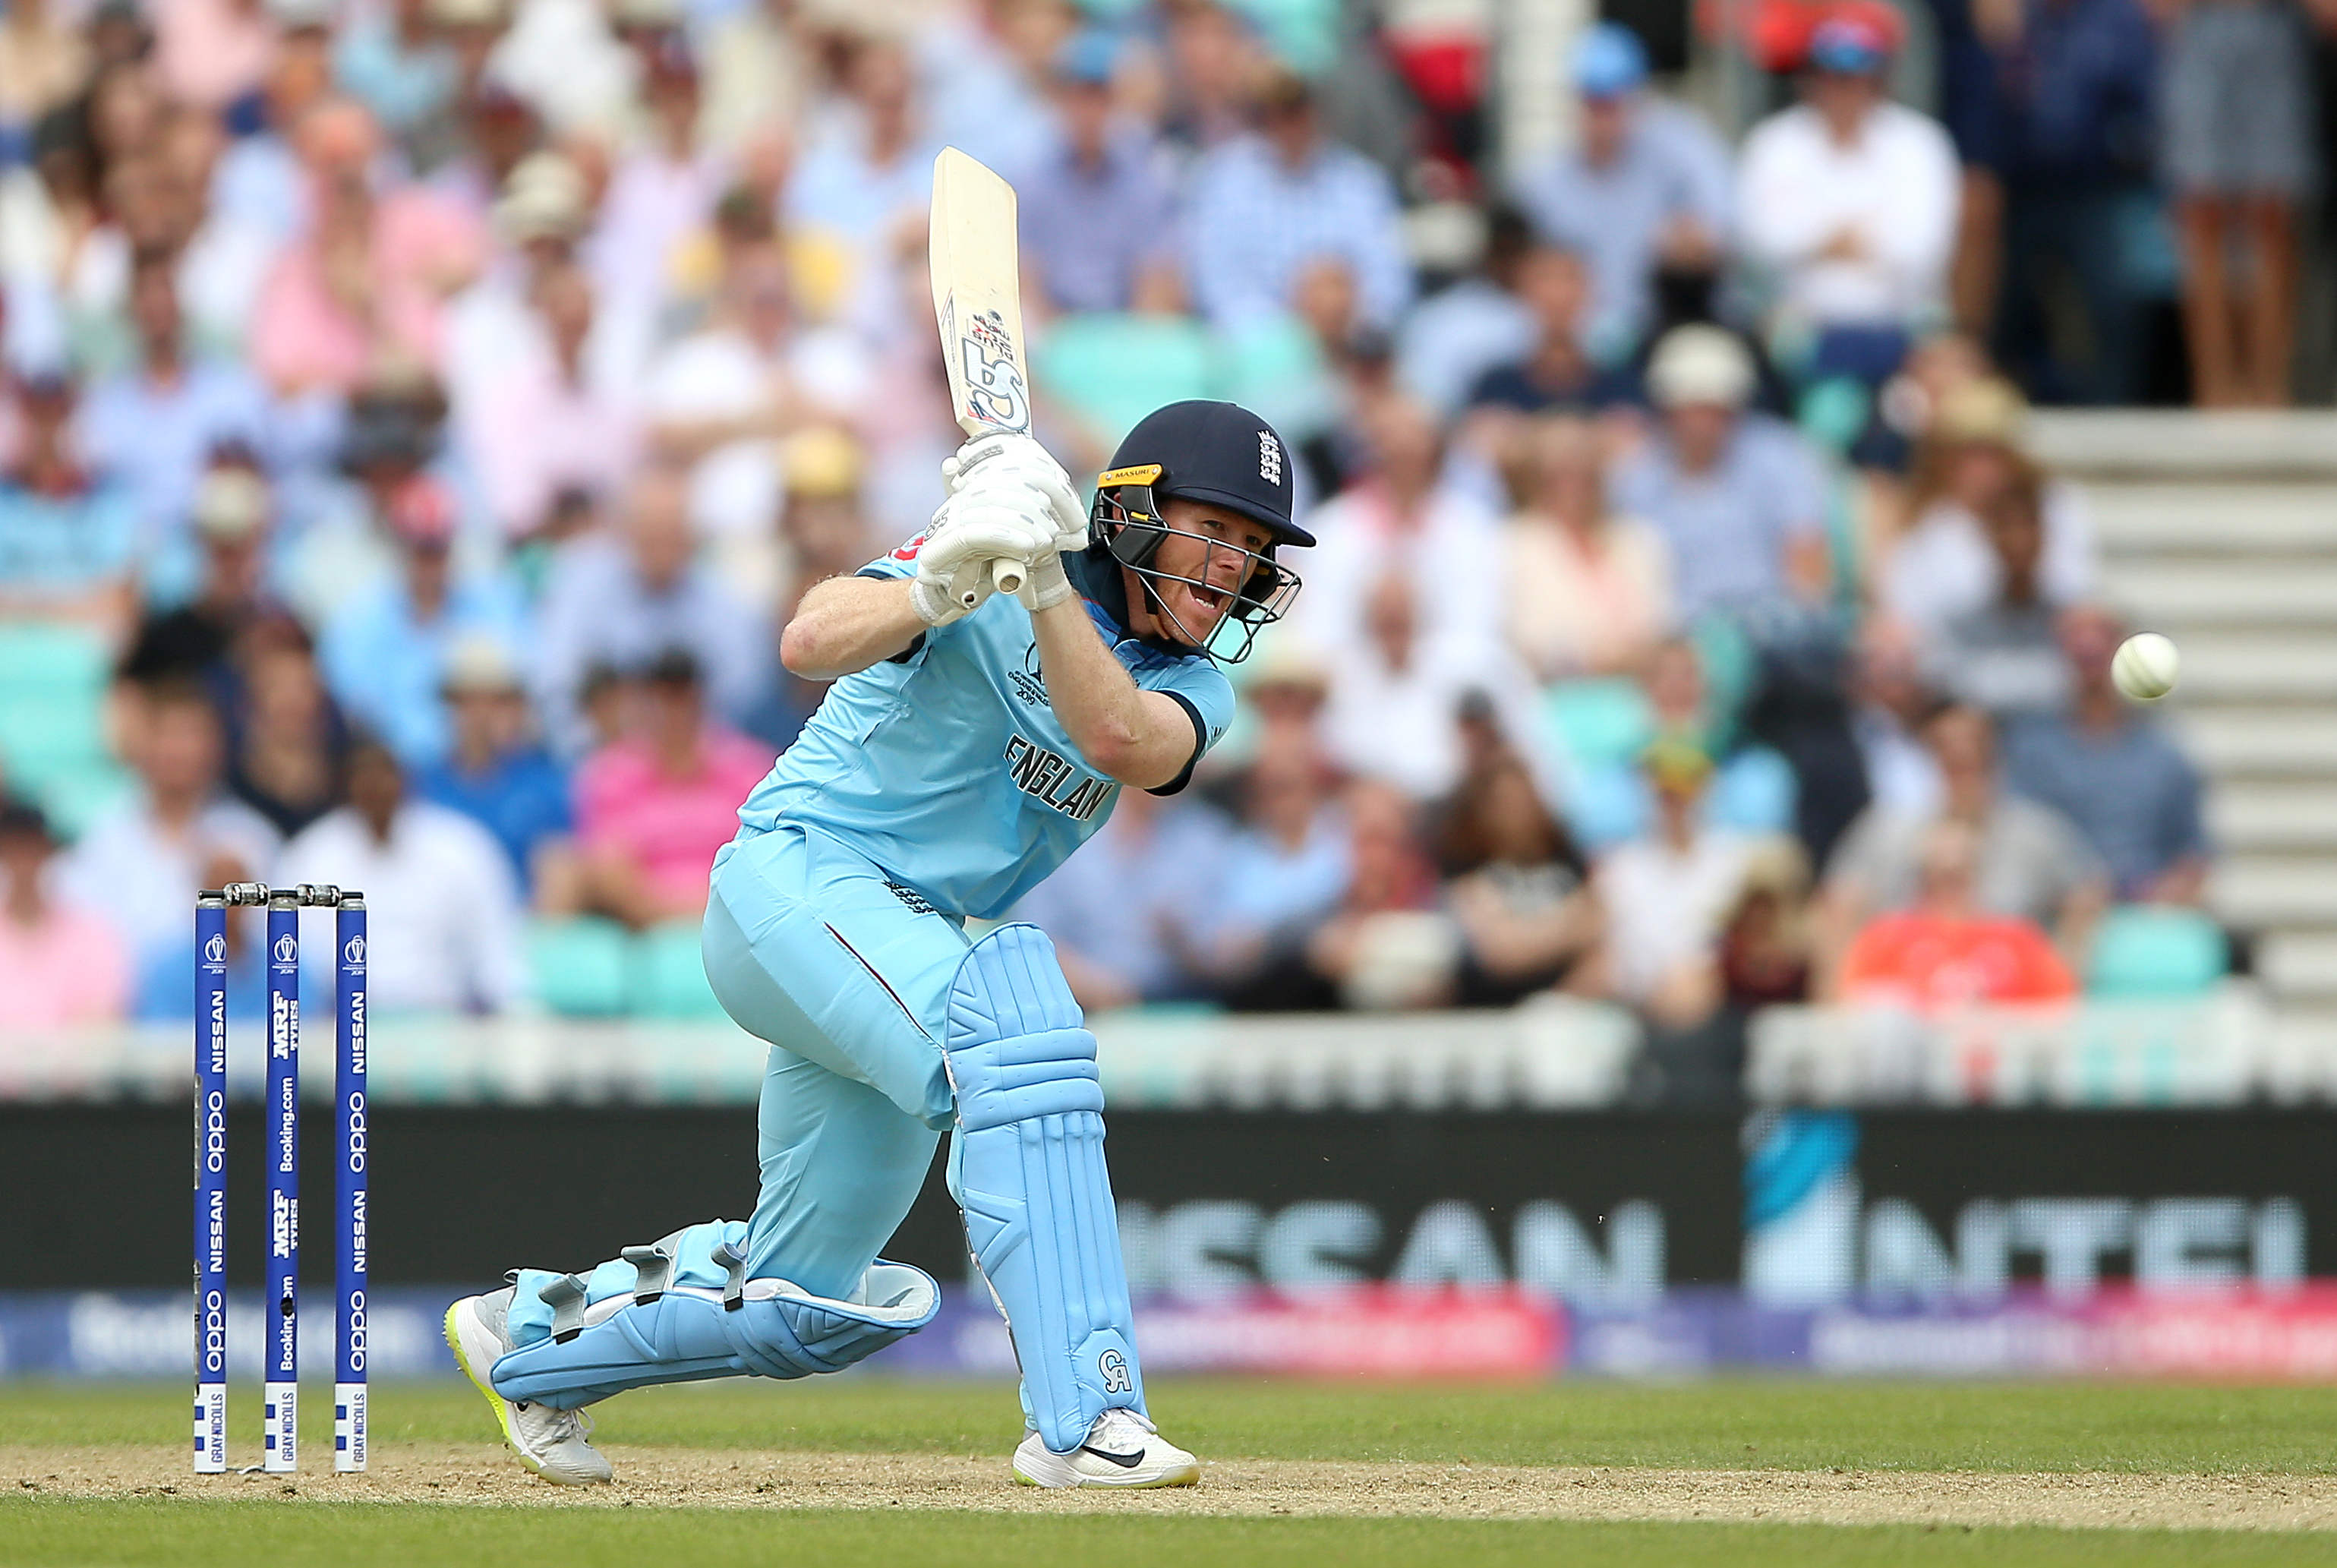 Cricket World Cup: England vs. Australia Preview and Betting Tips